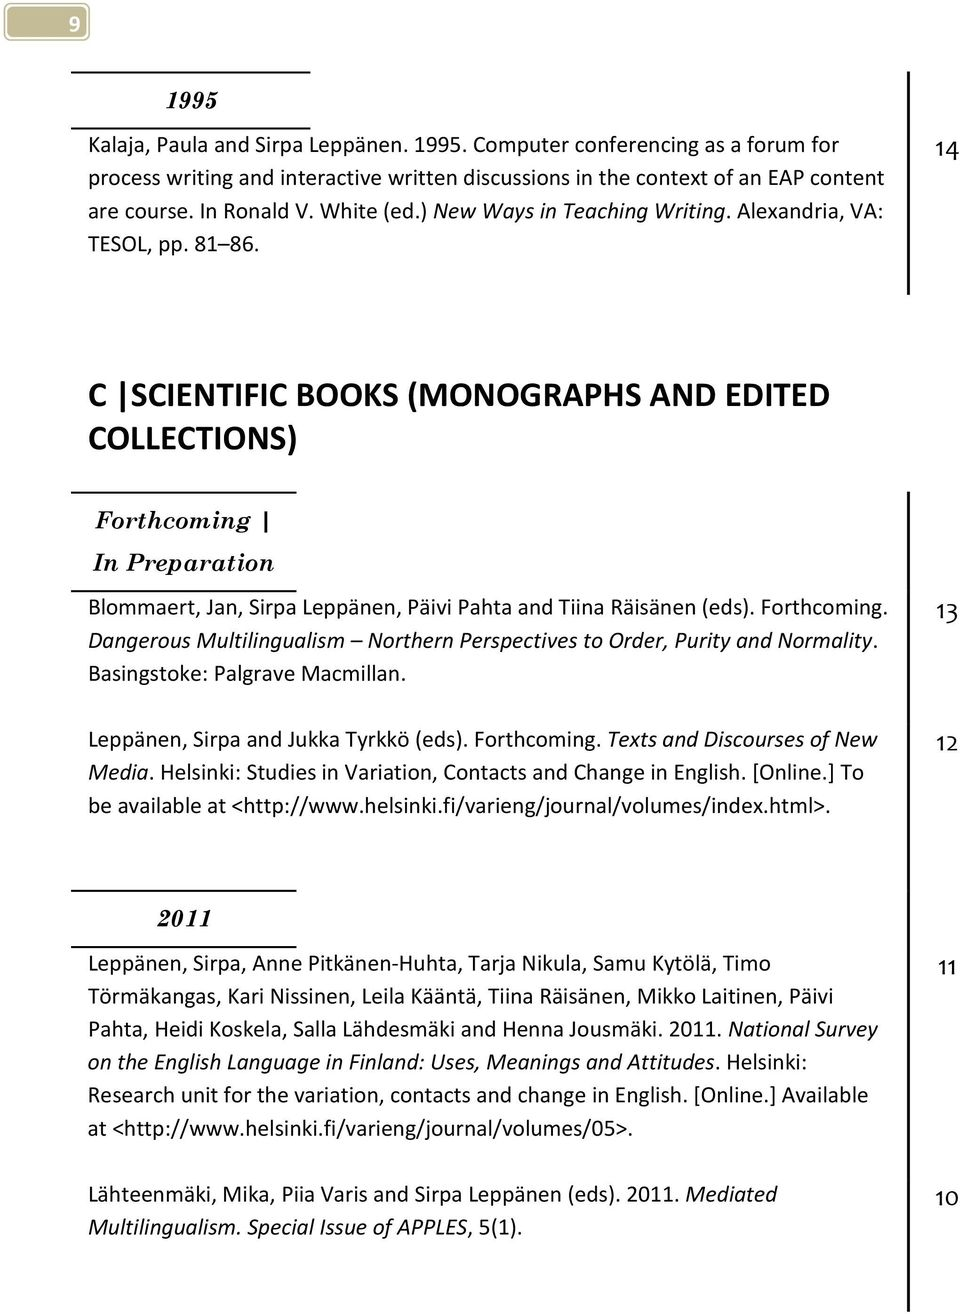 14 C SCIENTIFIC BOOKS (MONOGRAPHS AND EDITED COLLECTIONS) Forthcoming In Preparation Blommaert, Jan, Sirpa Leppänen, Päivi Pahta and Tiina Räisänen (eds). Forthcoming. Dangerous Multilingualism Northern Perspectives to Order, Purity and Normality.